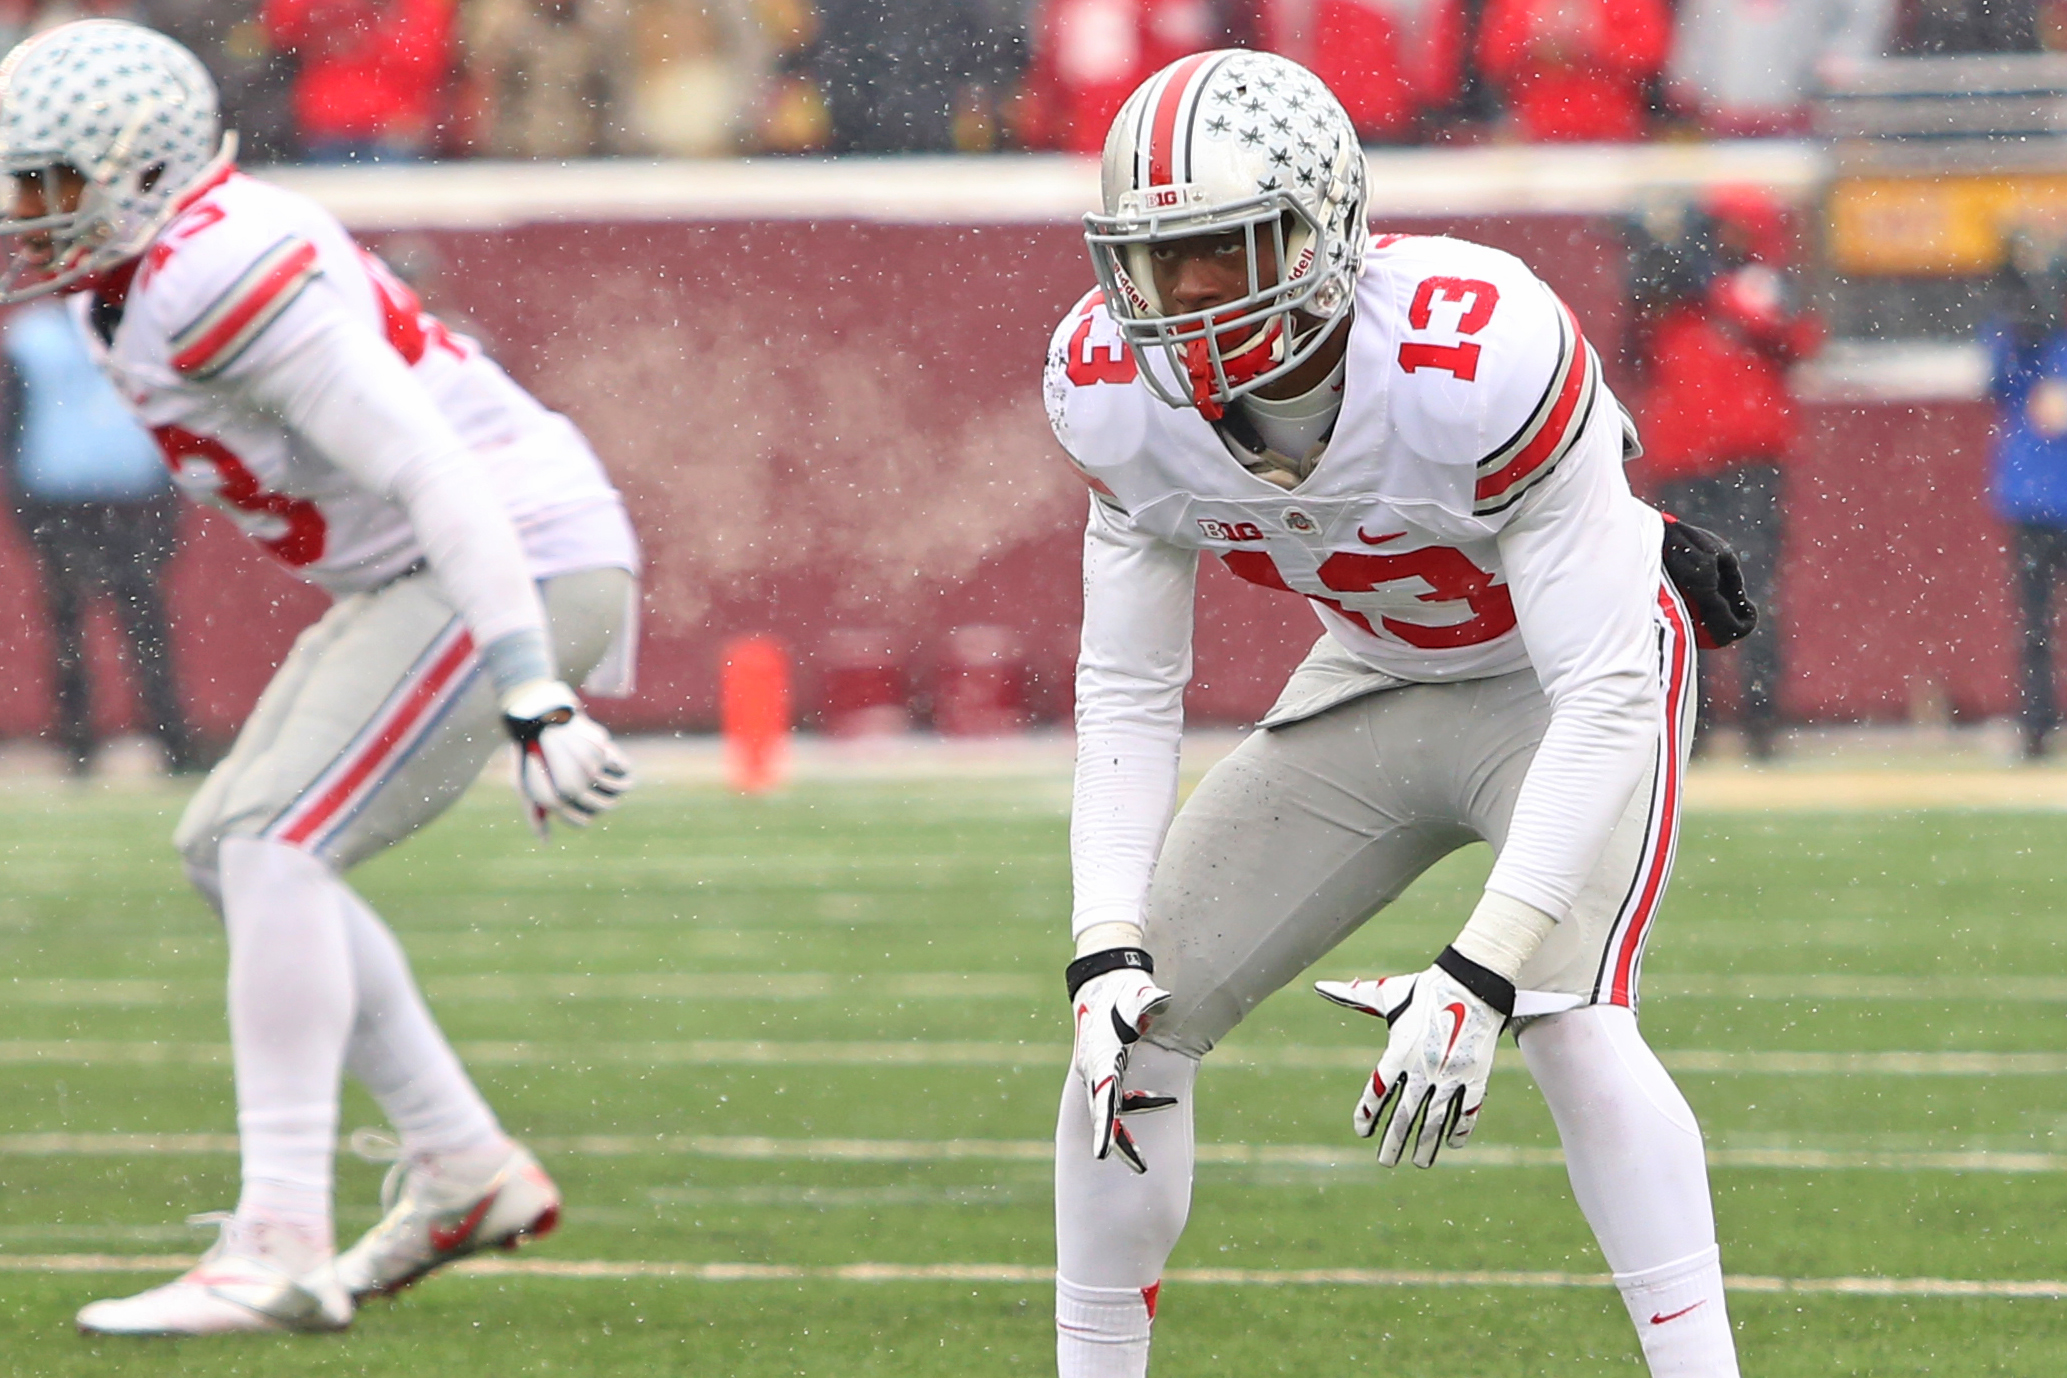 Ohio State s Eli Apple making a turnaround as a redshirt freshman